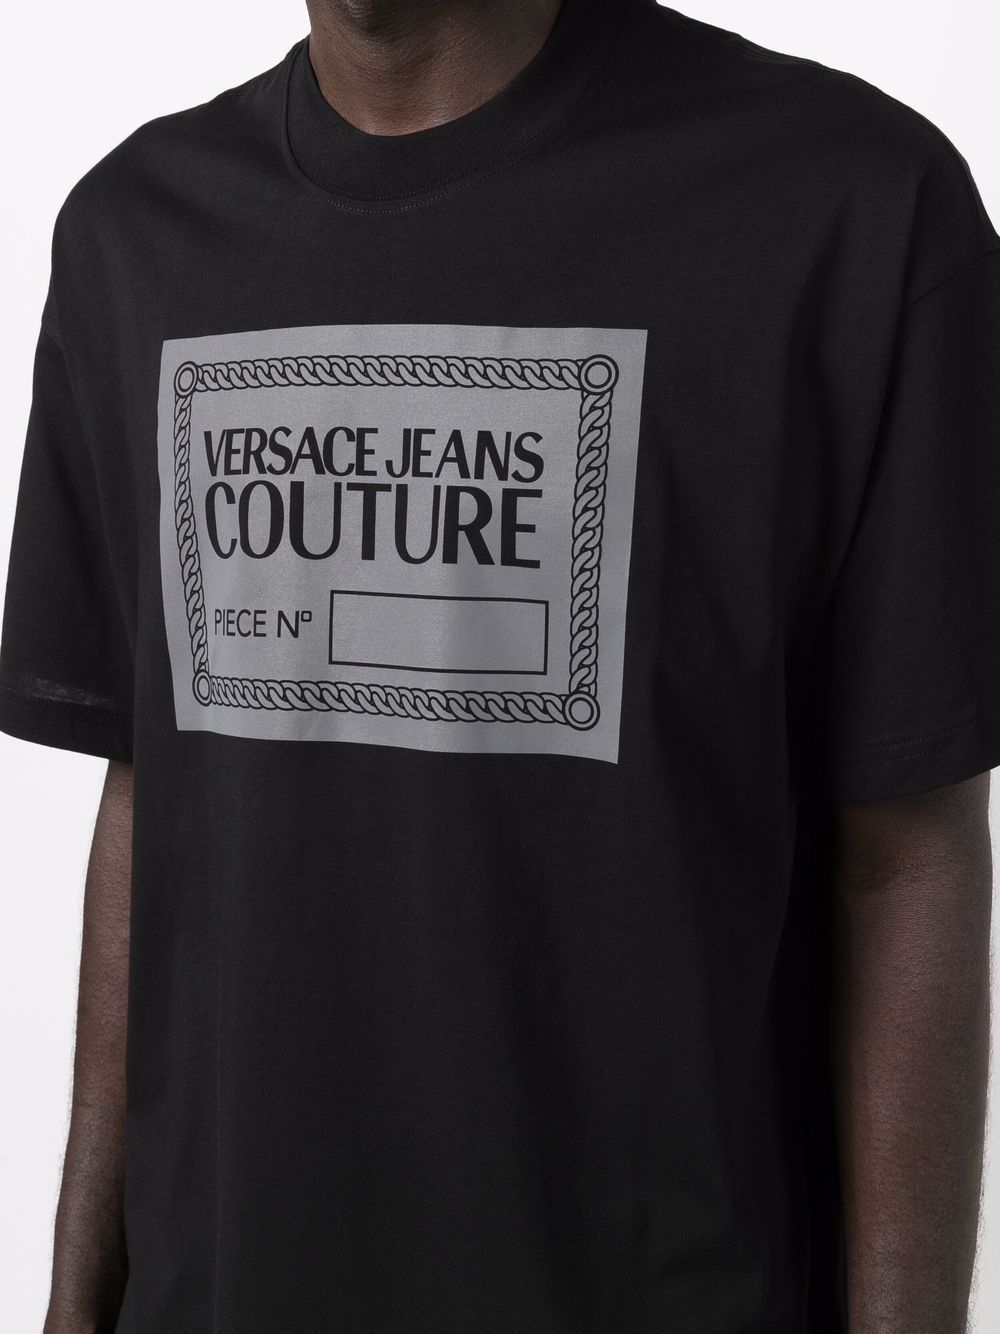 Versace jeans couture t-shirt e polo nero - Versace Jeans Couture